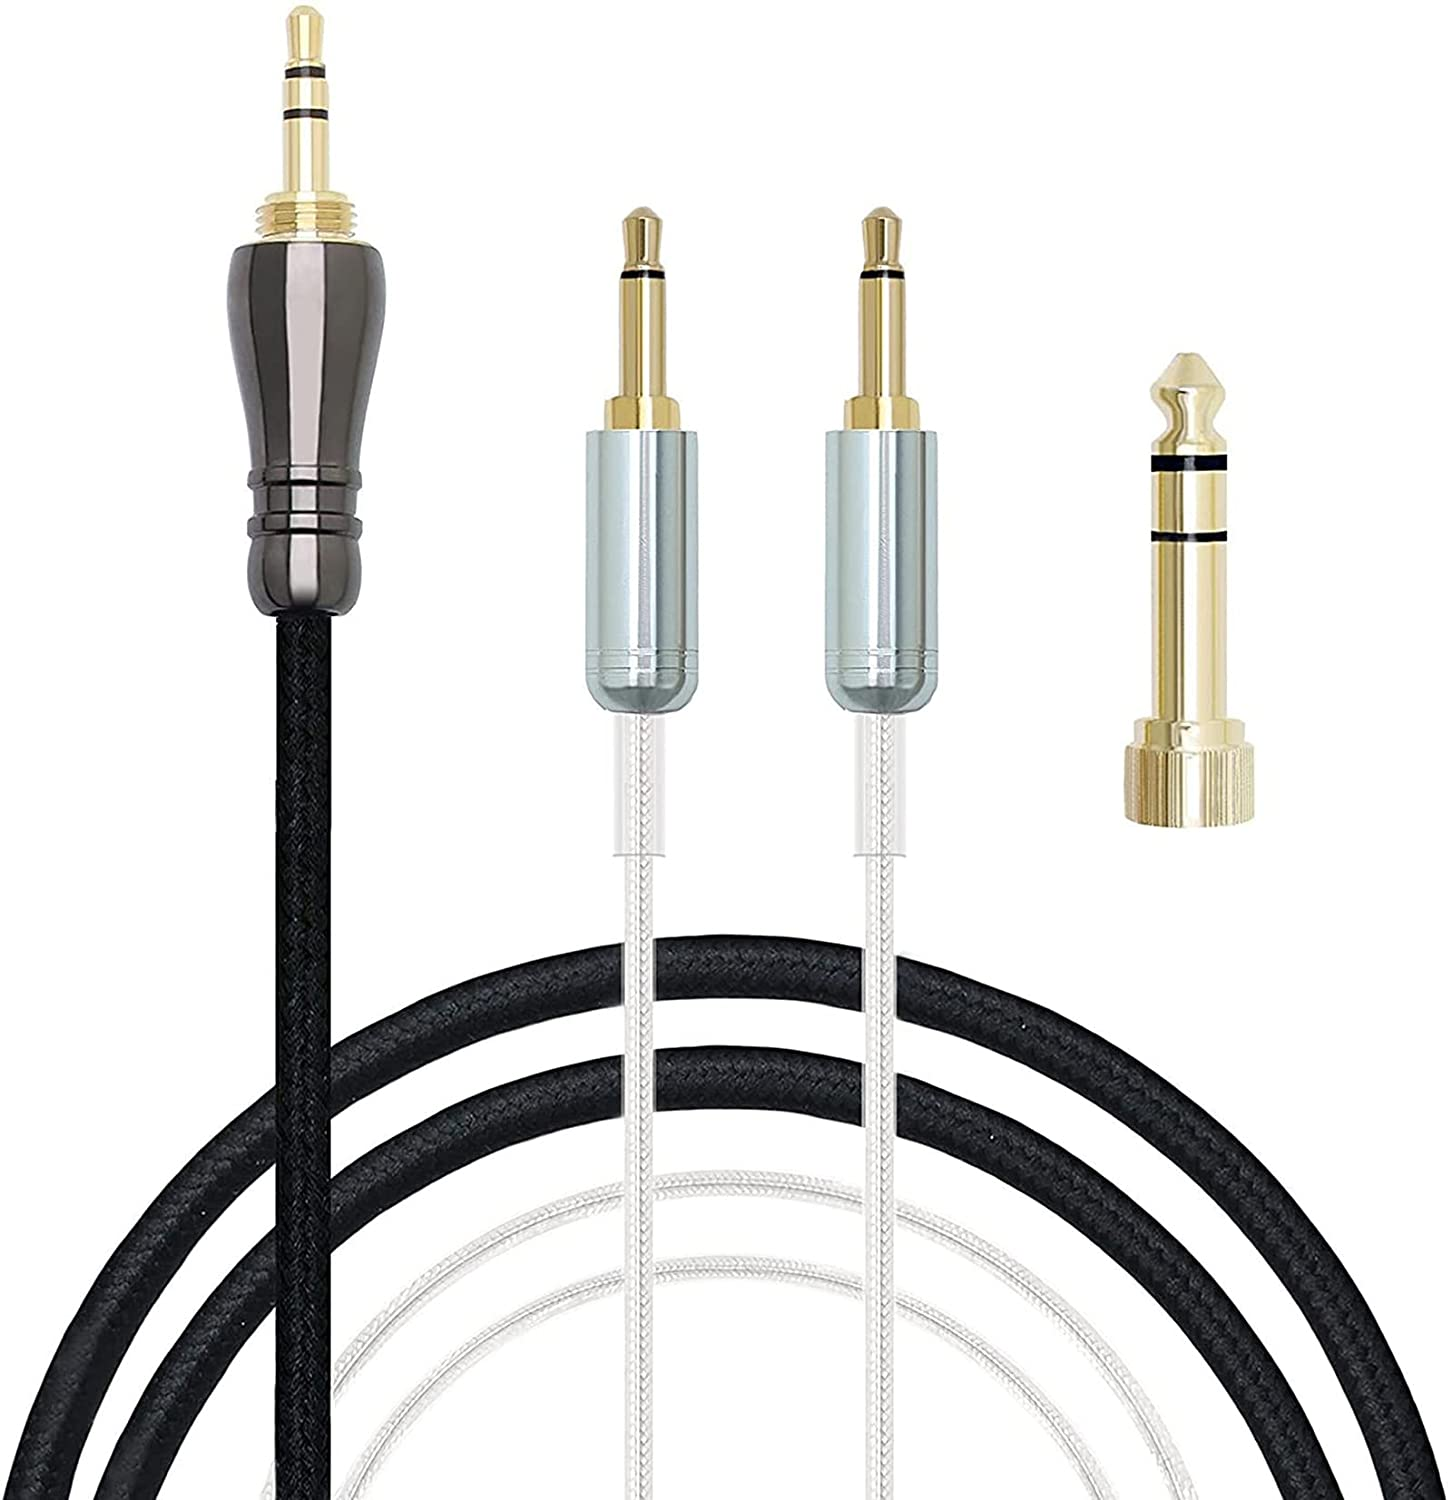 gotor Replacement Upgrade Audio Extension for A Max 42% OFF Denon Cable Cord Ranking TOP5